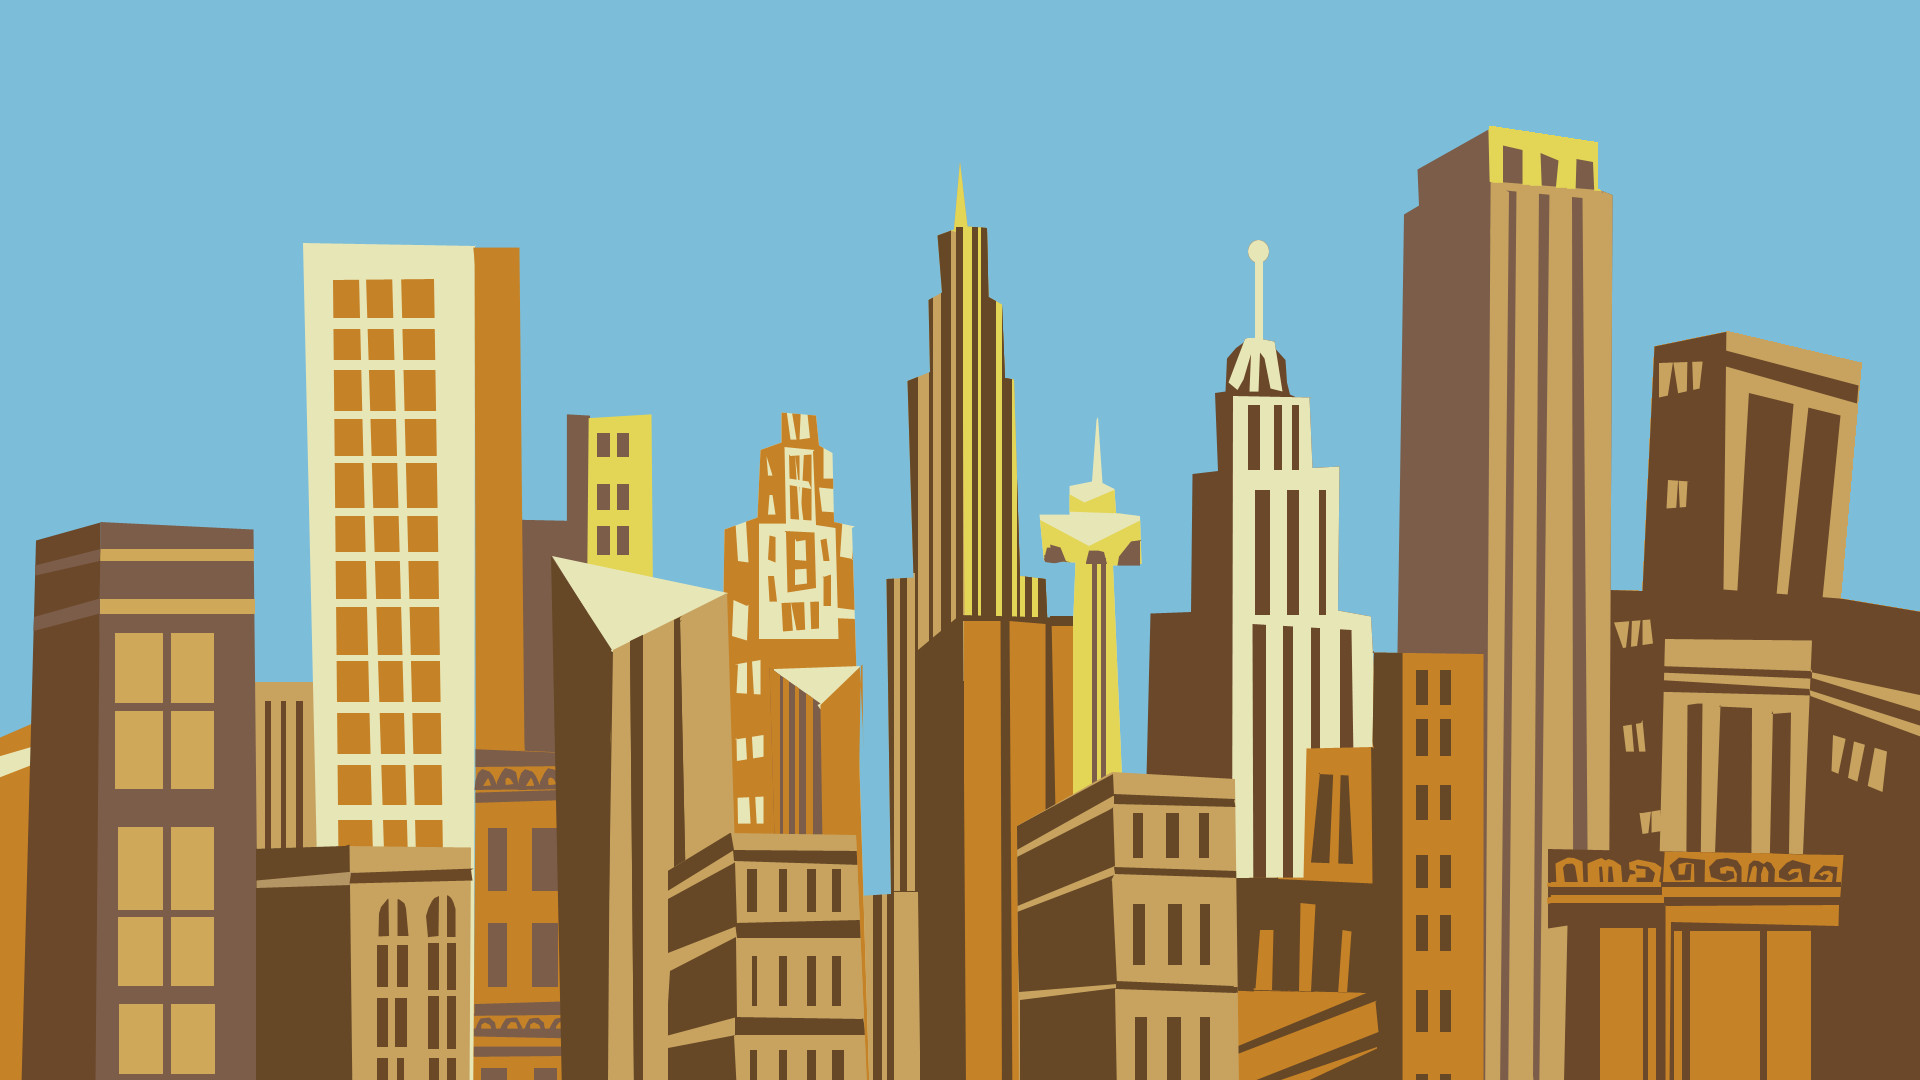 City Cartoon Wallpaper